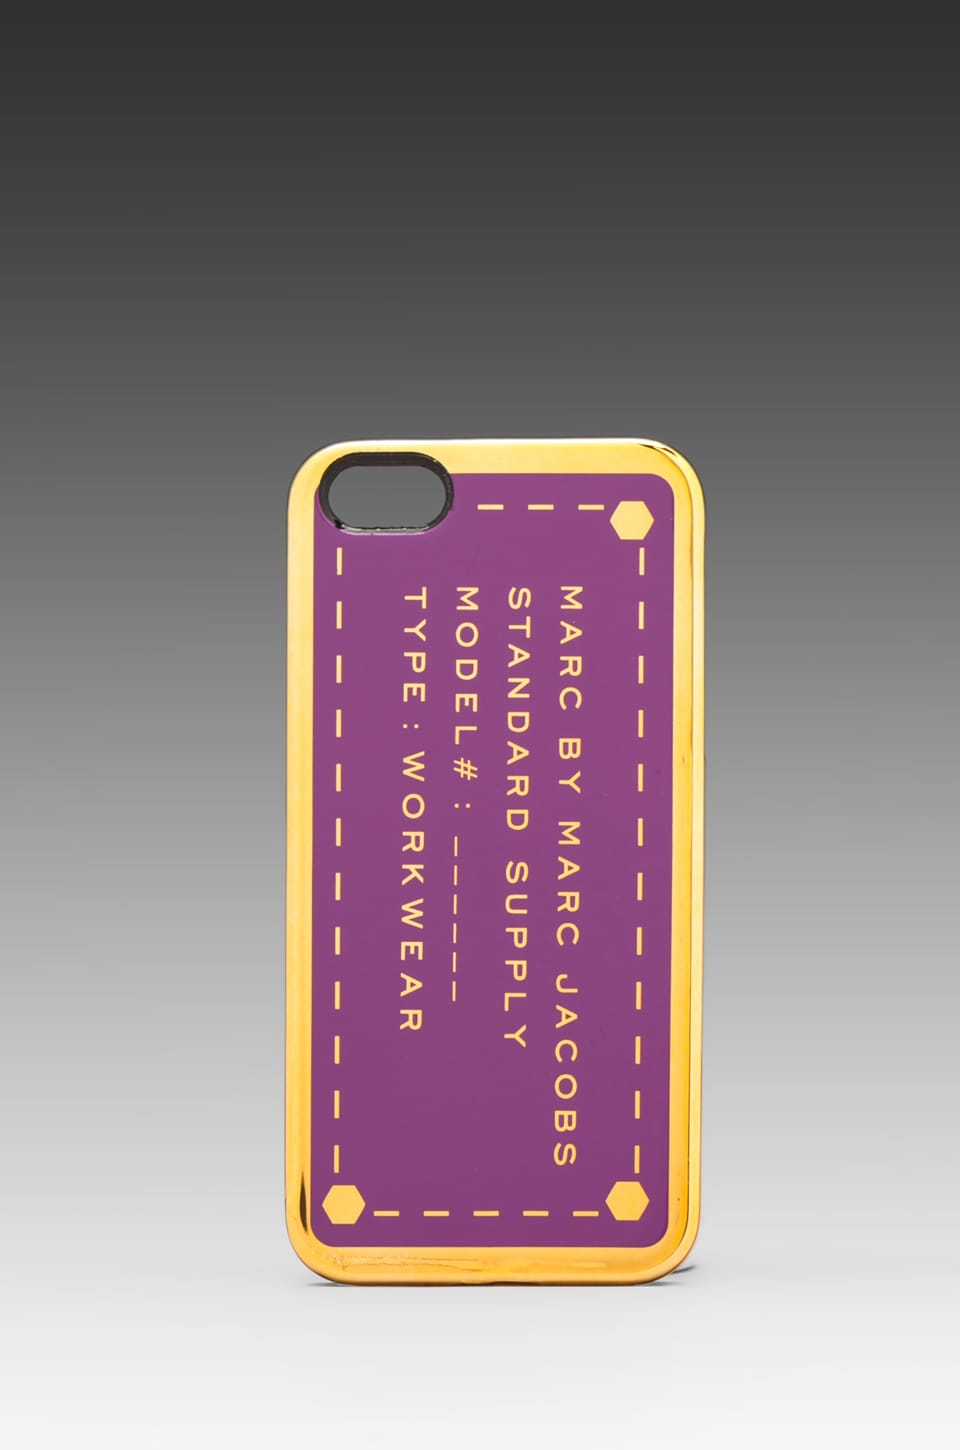 Marc by Marc Jacobs Metallic Standard Supply Phone Case in Amazon Purple